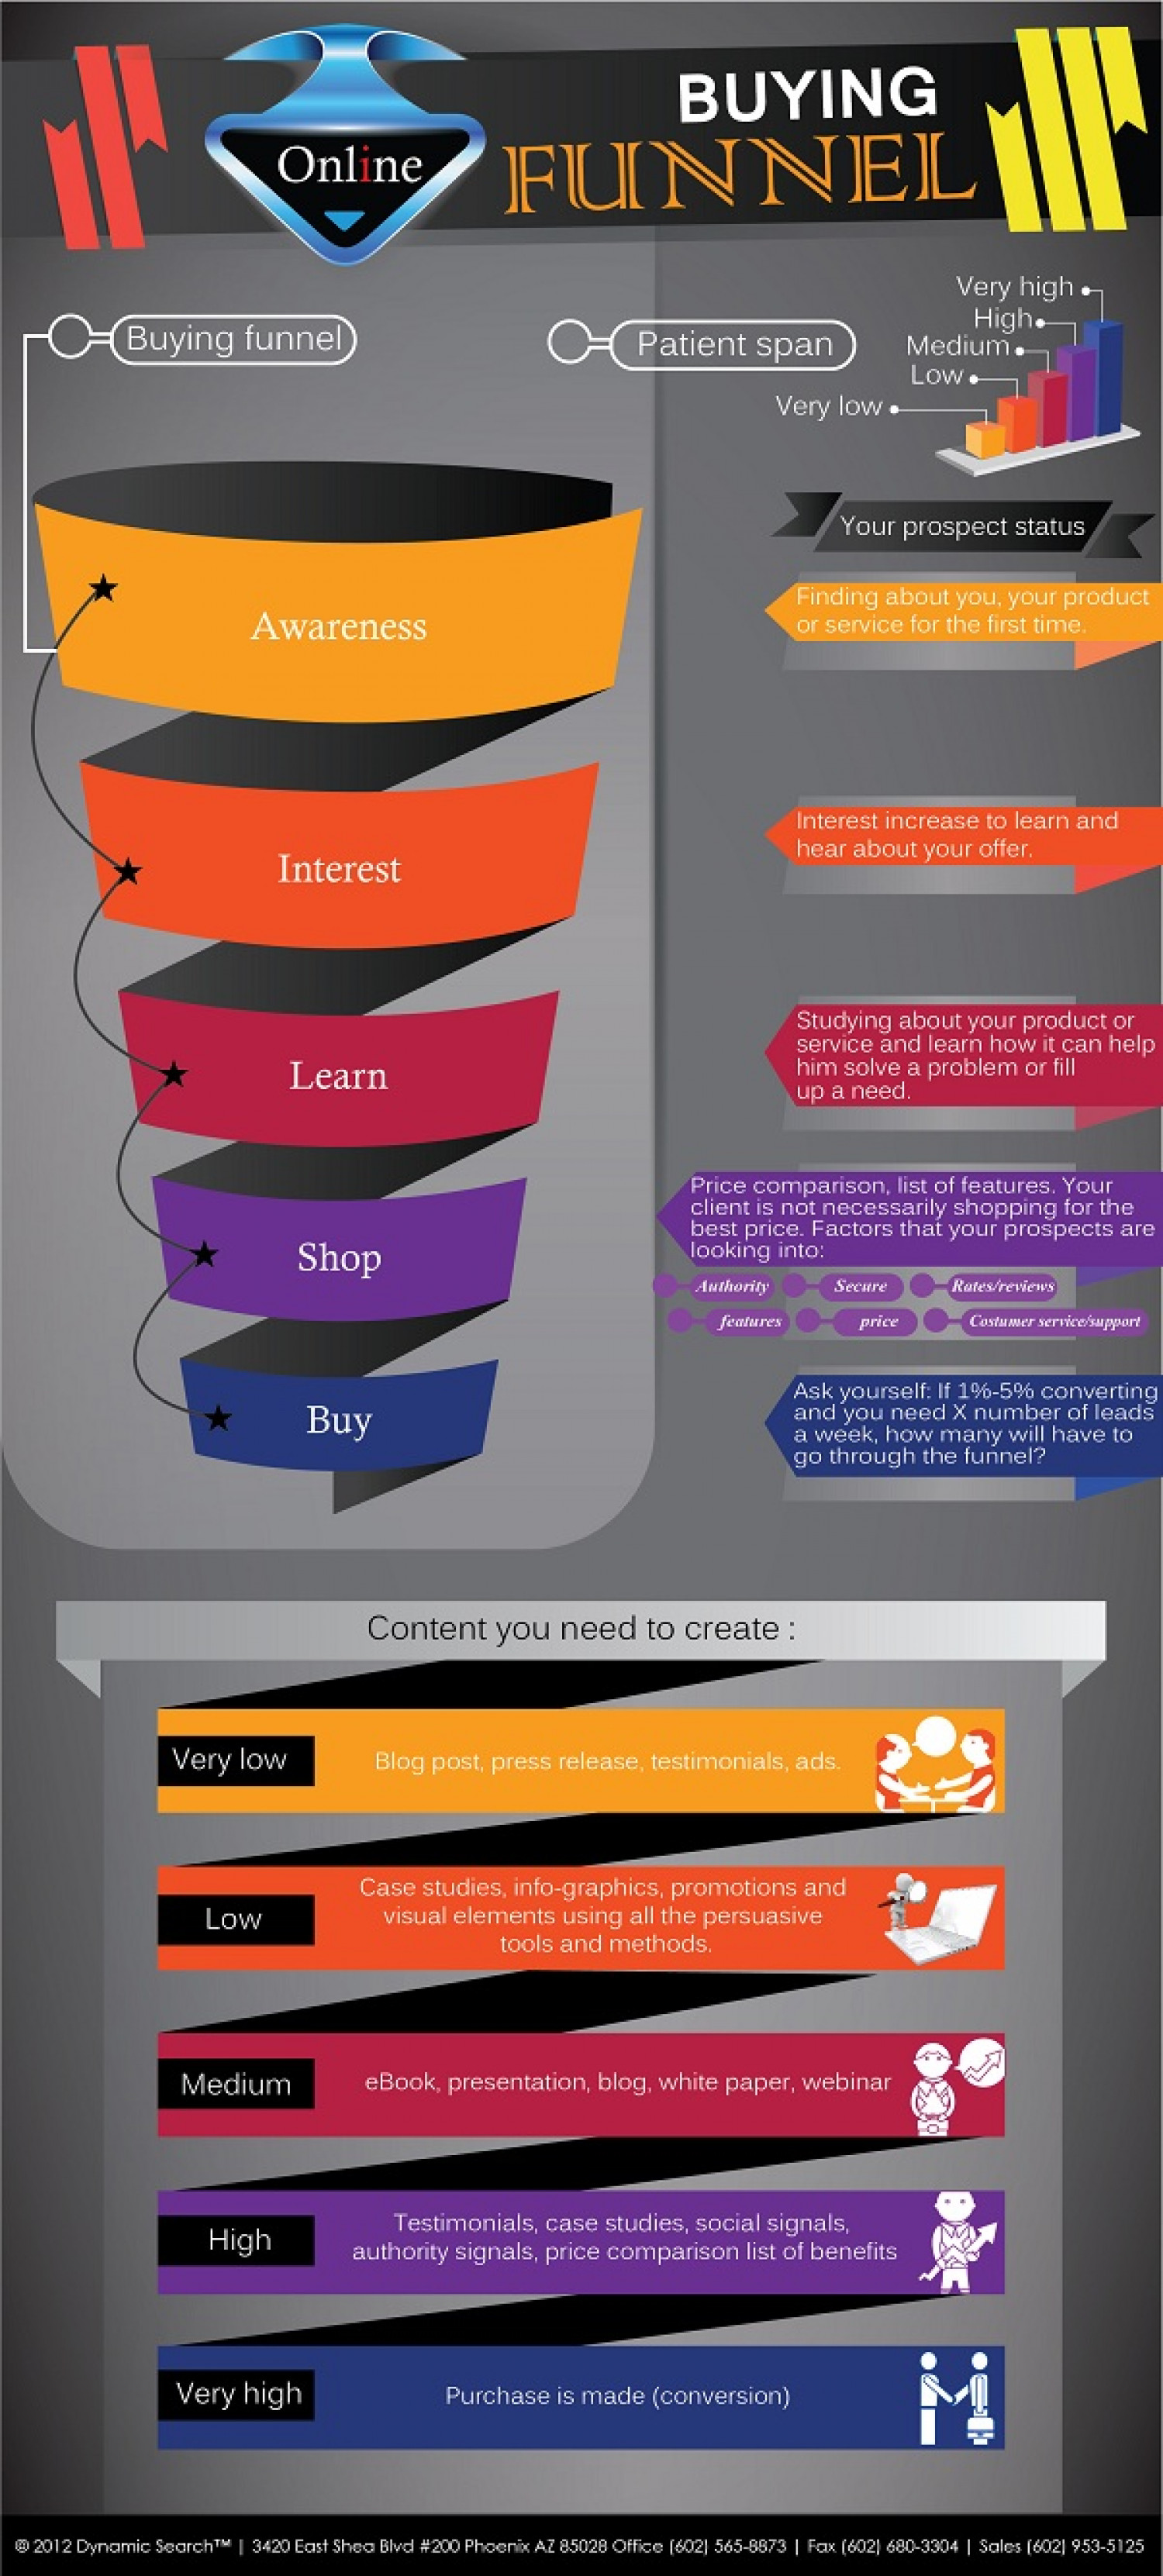 The Online Buying Funnel Infographic